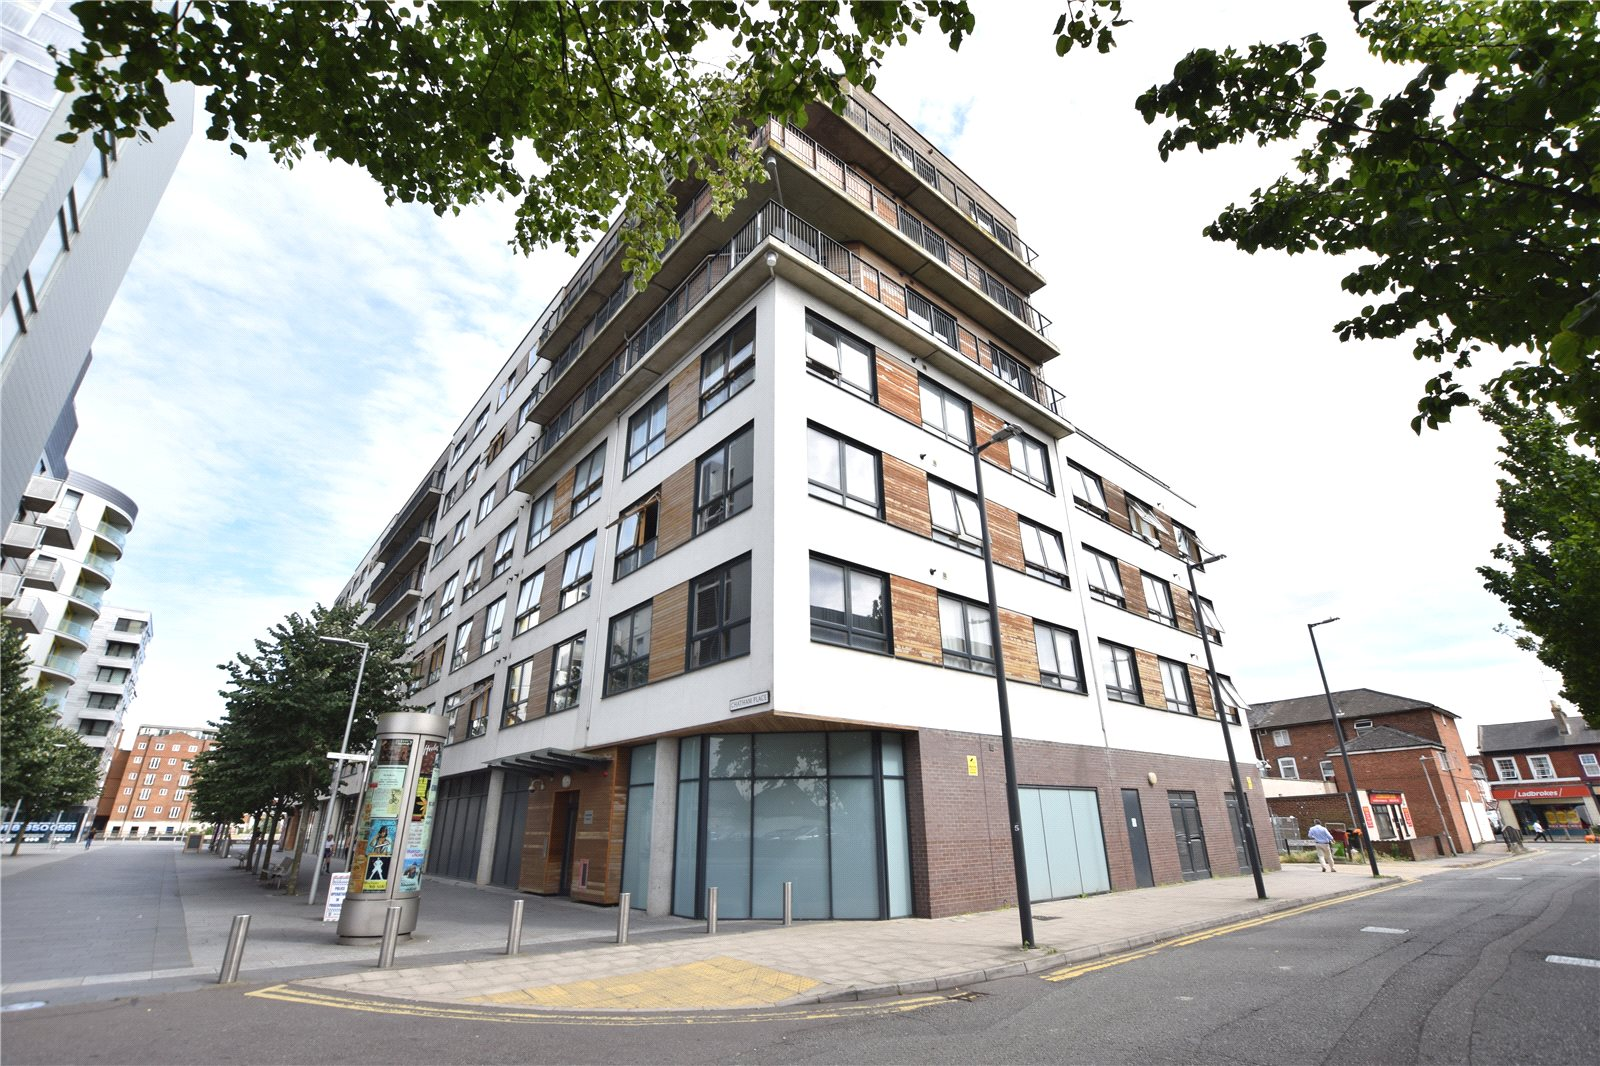 2 Bedrooms Apartment Flat for sale in Mayer House, Chatham Place, Reading, Berkshire, RG1